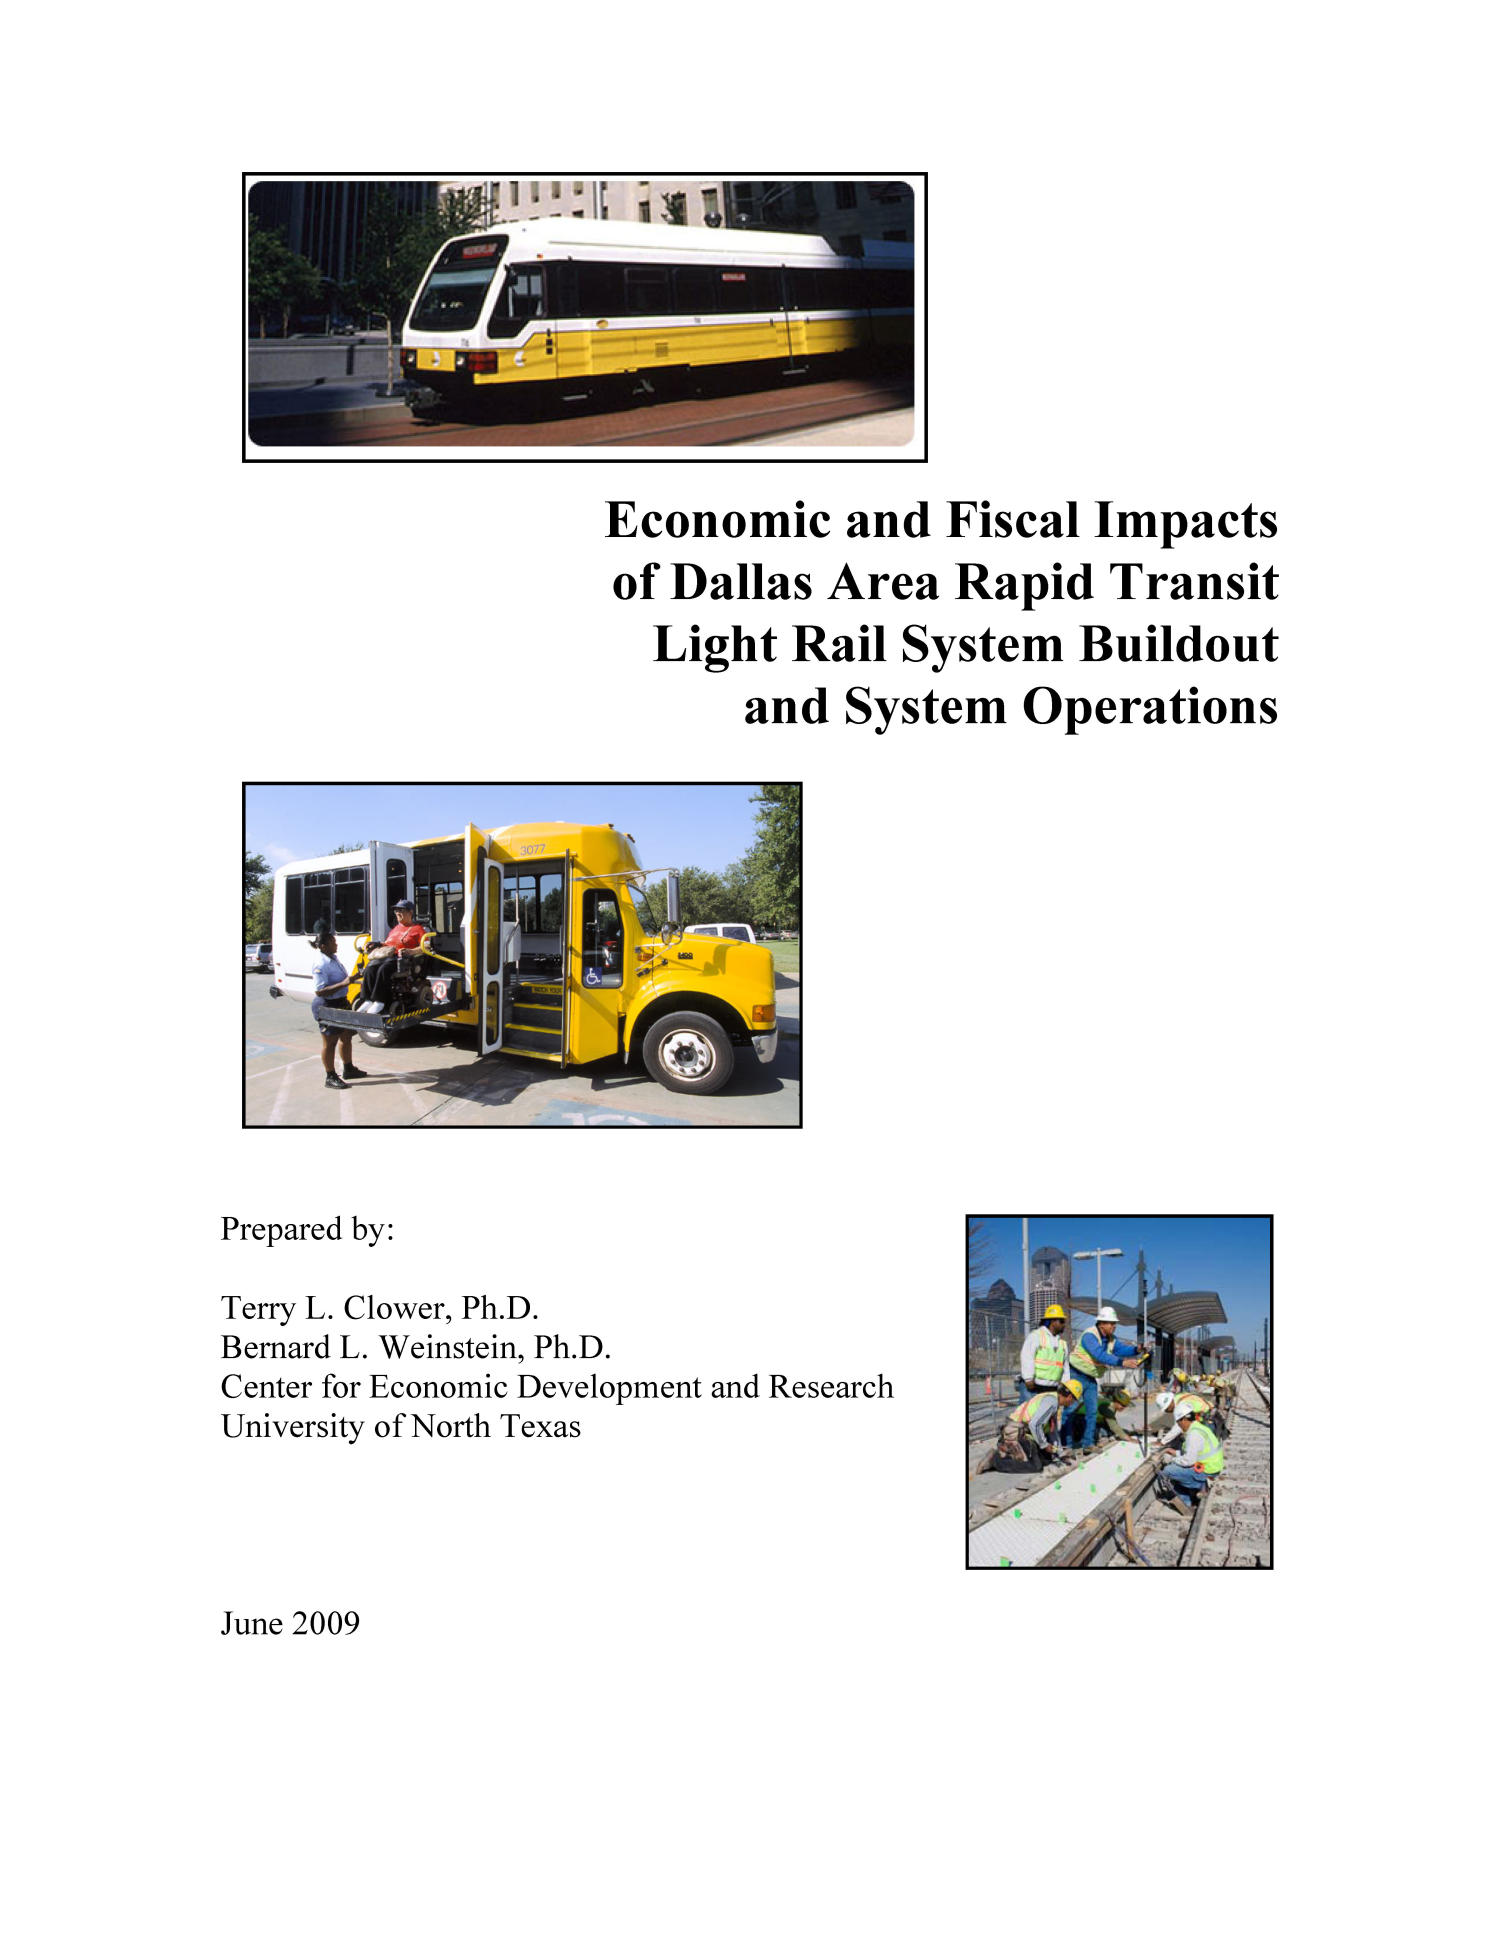 Economic and Fiscal Impacts of Dallas Area Rapid Transit Light Rail System Buildout and System Operations                                                                                                      Front Cover